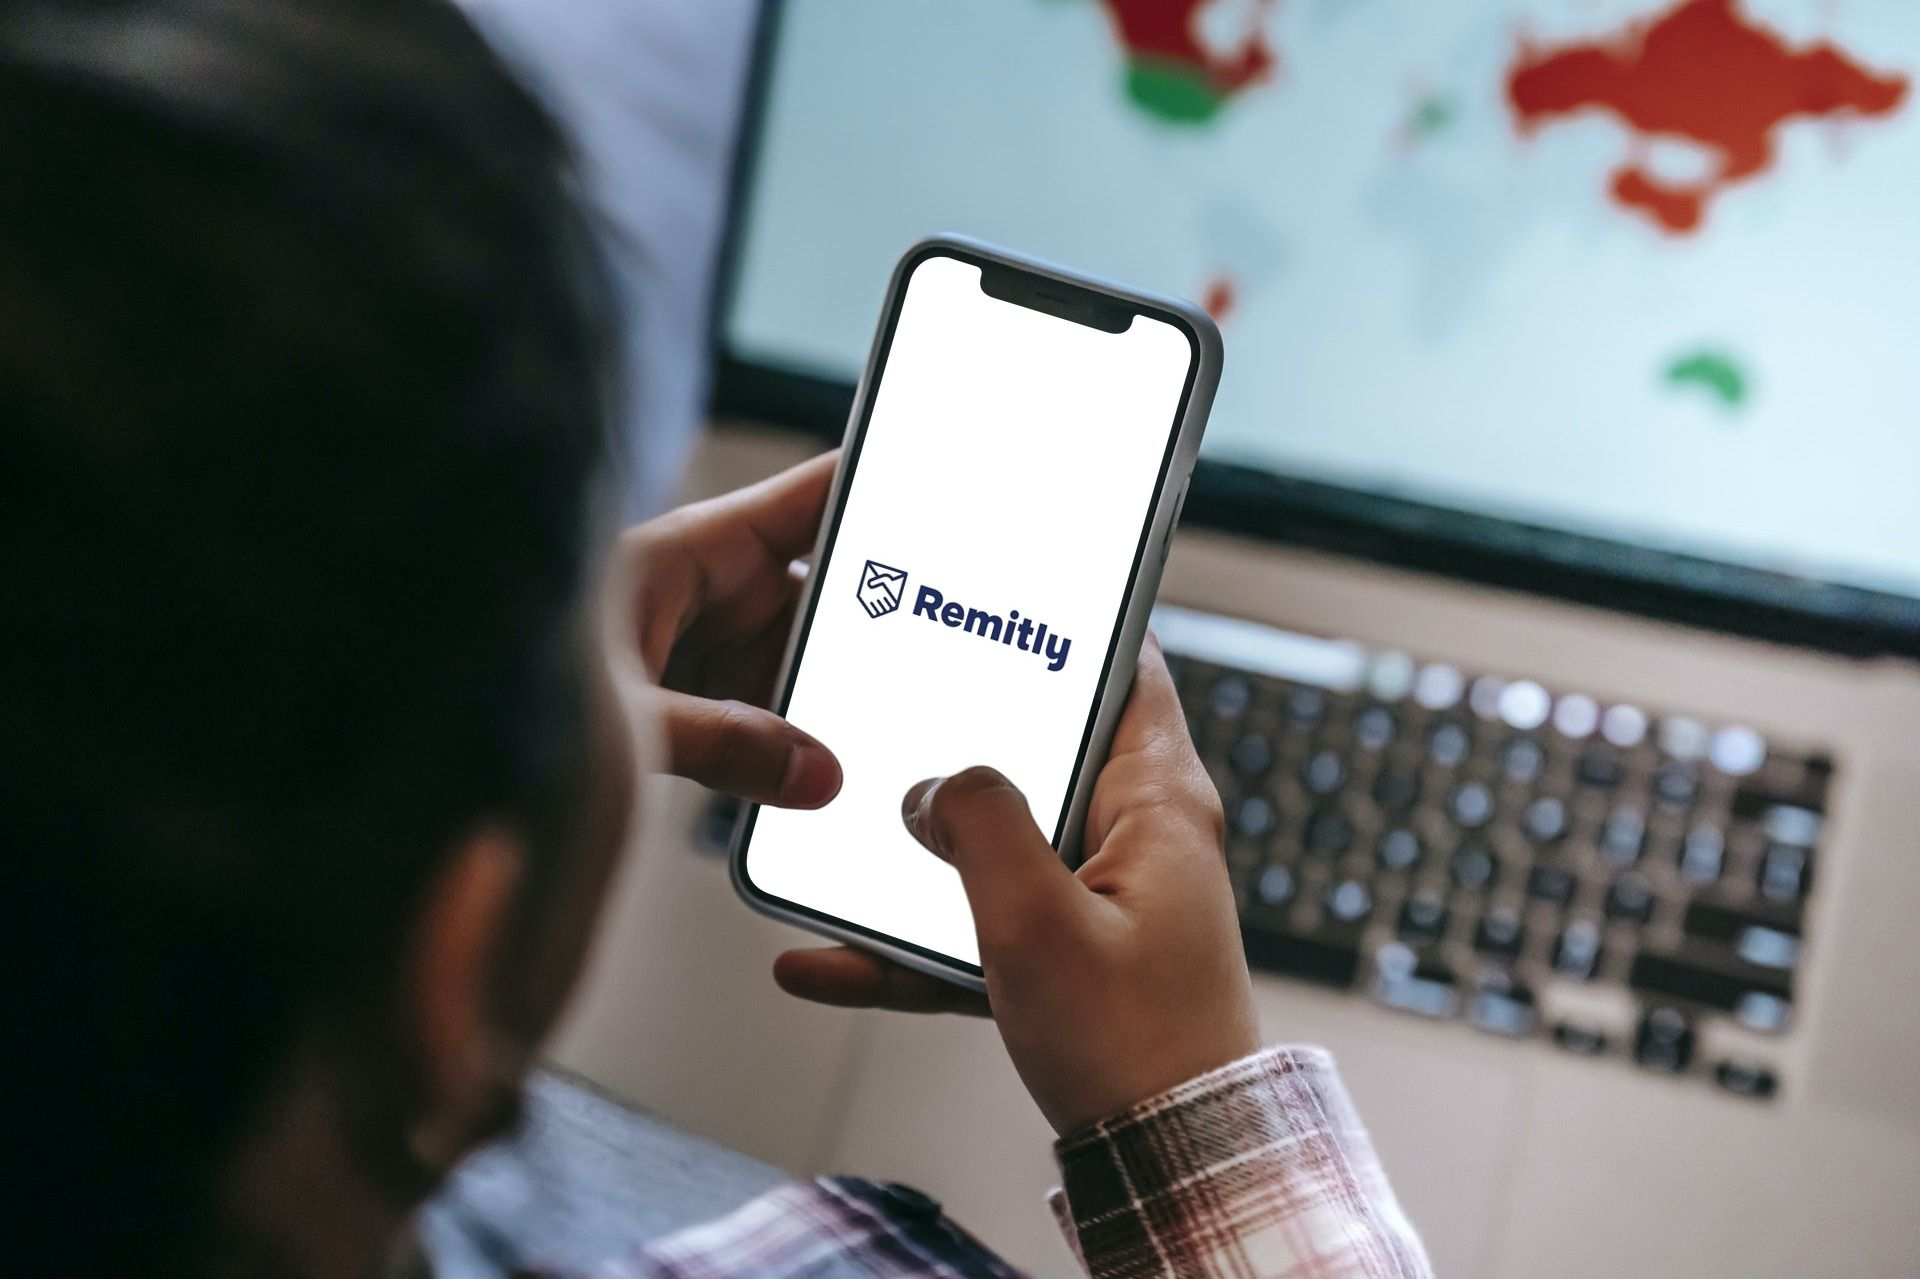 Remitly Initial Public Offering